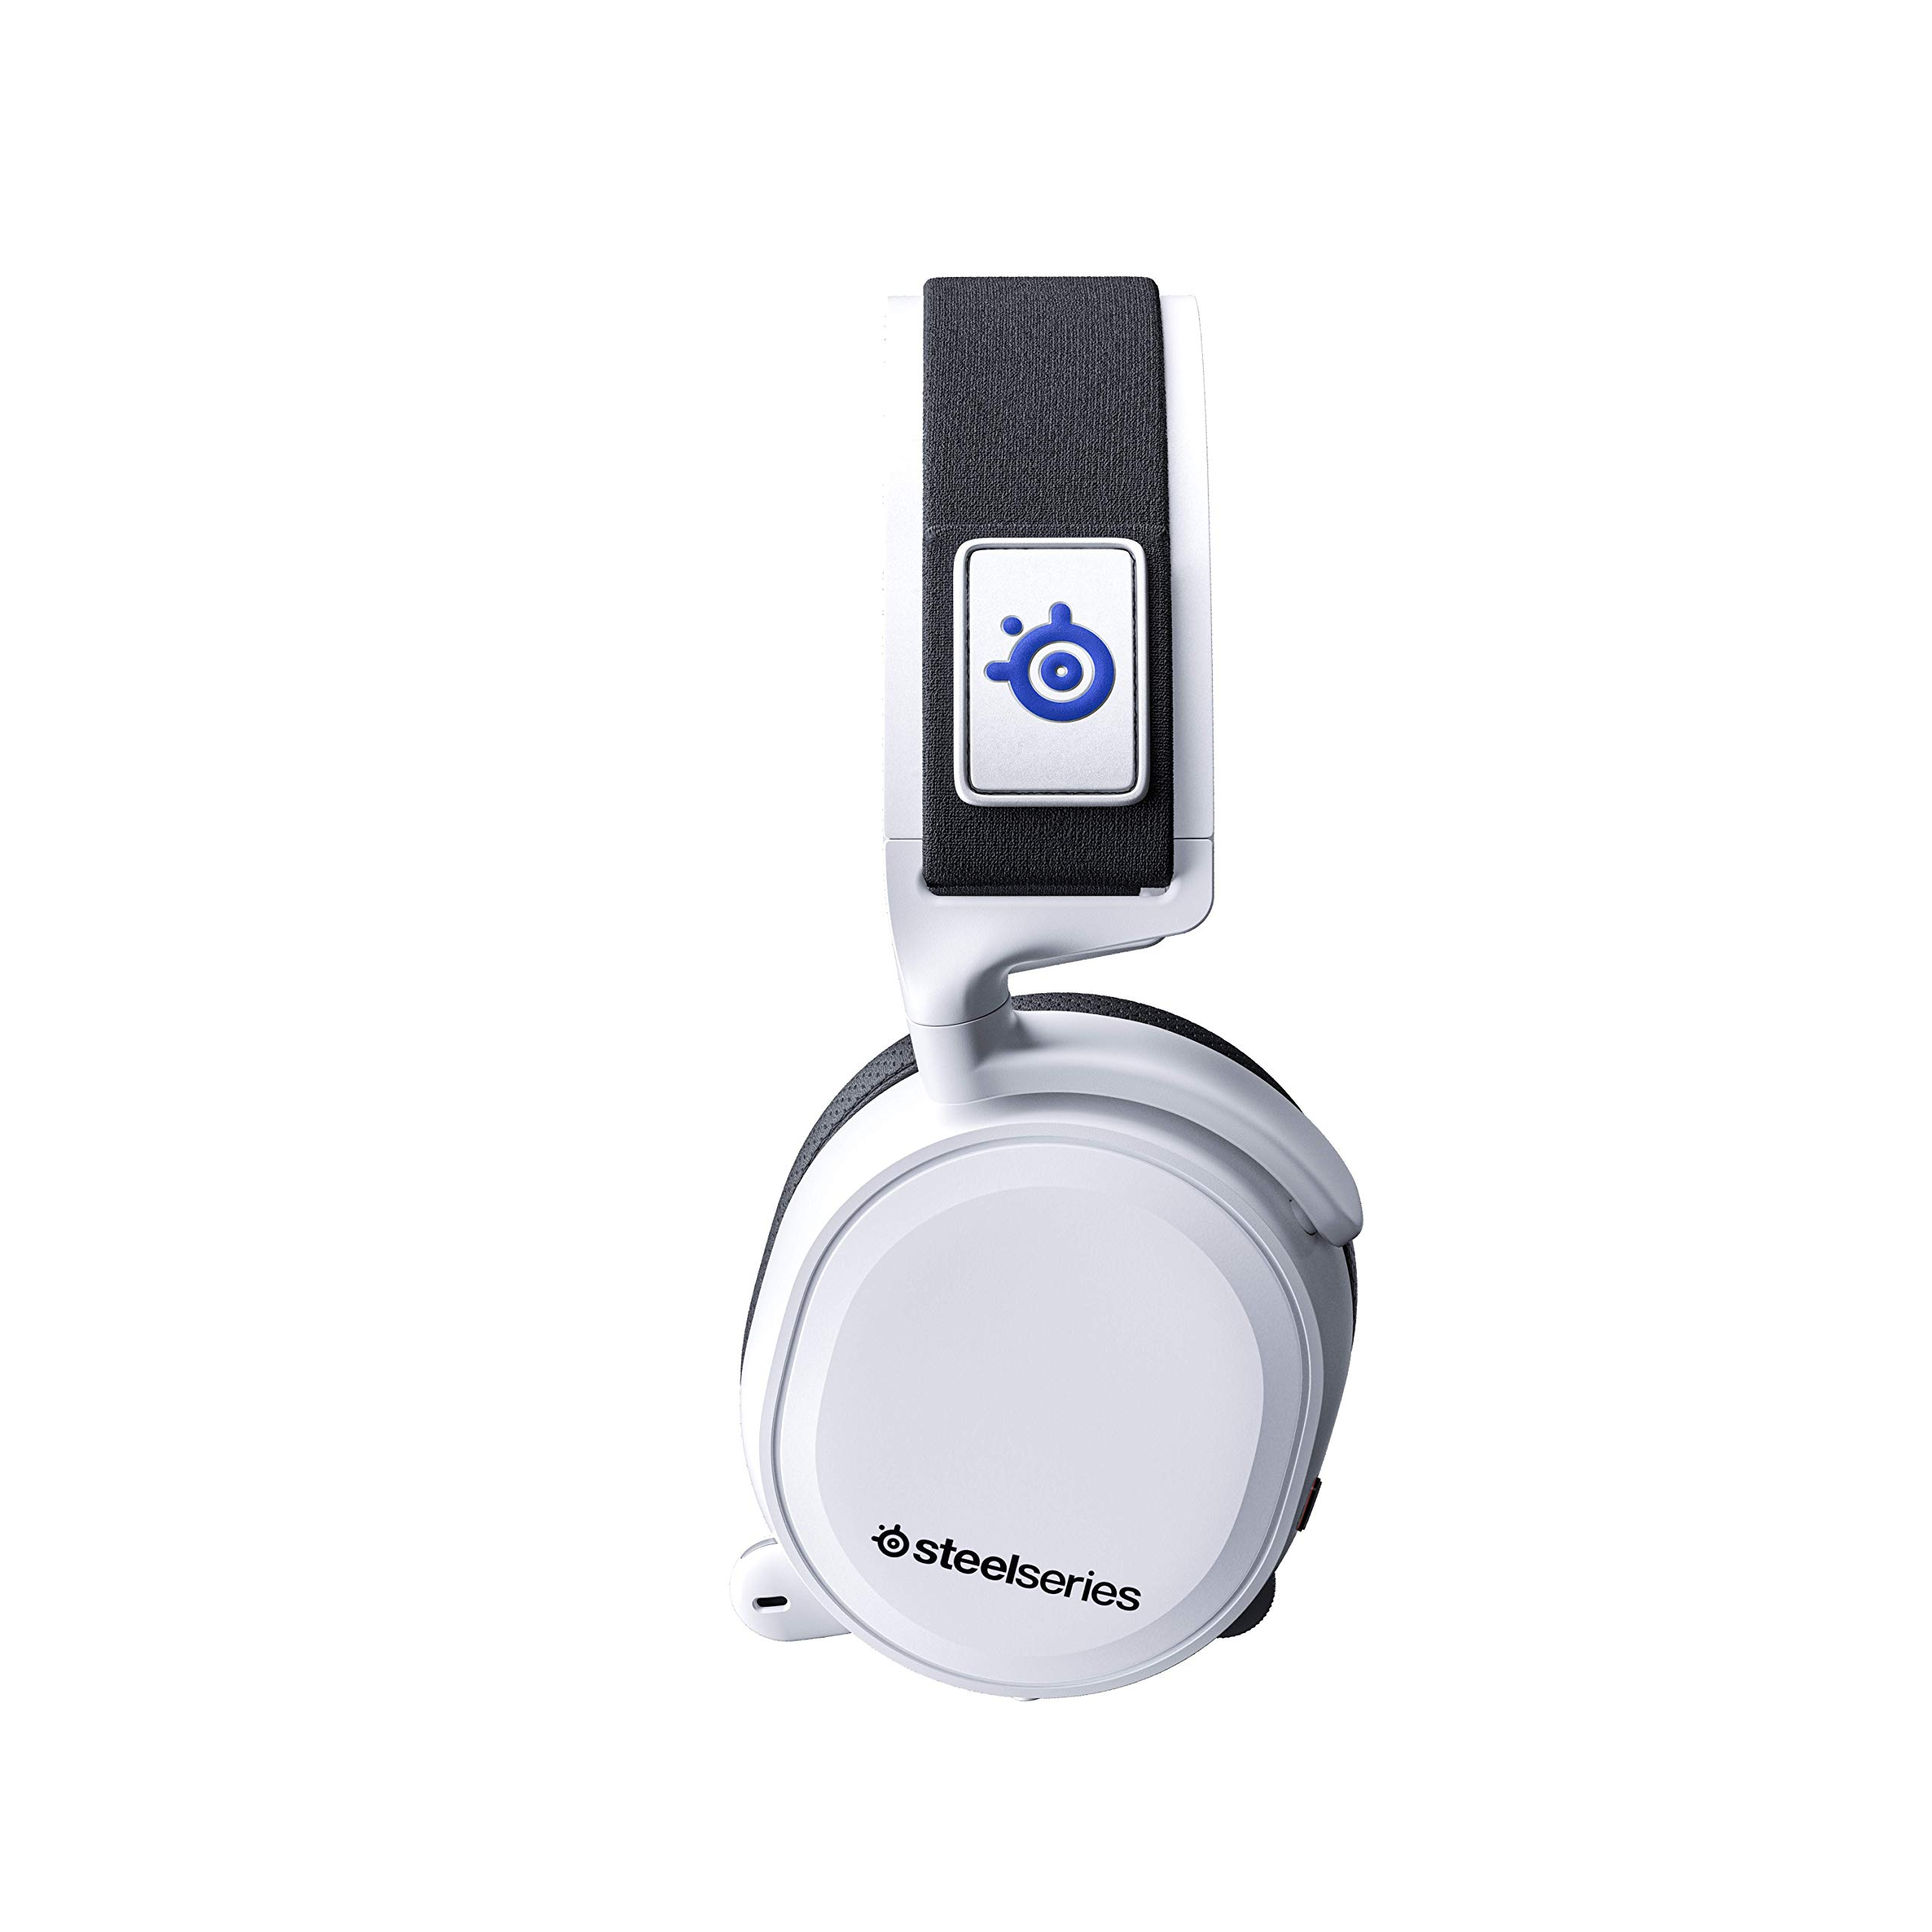 Tai Nghe SteelSeries ARCTIS 7P WIRELESS Best For PlayStation 5 - (White) - Hàng Chính Hãng